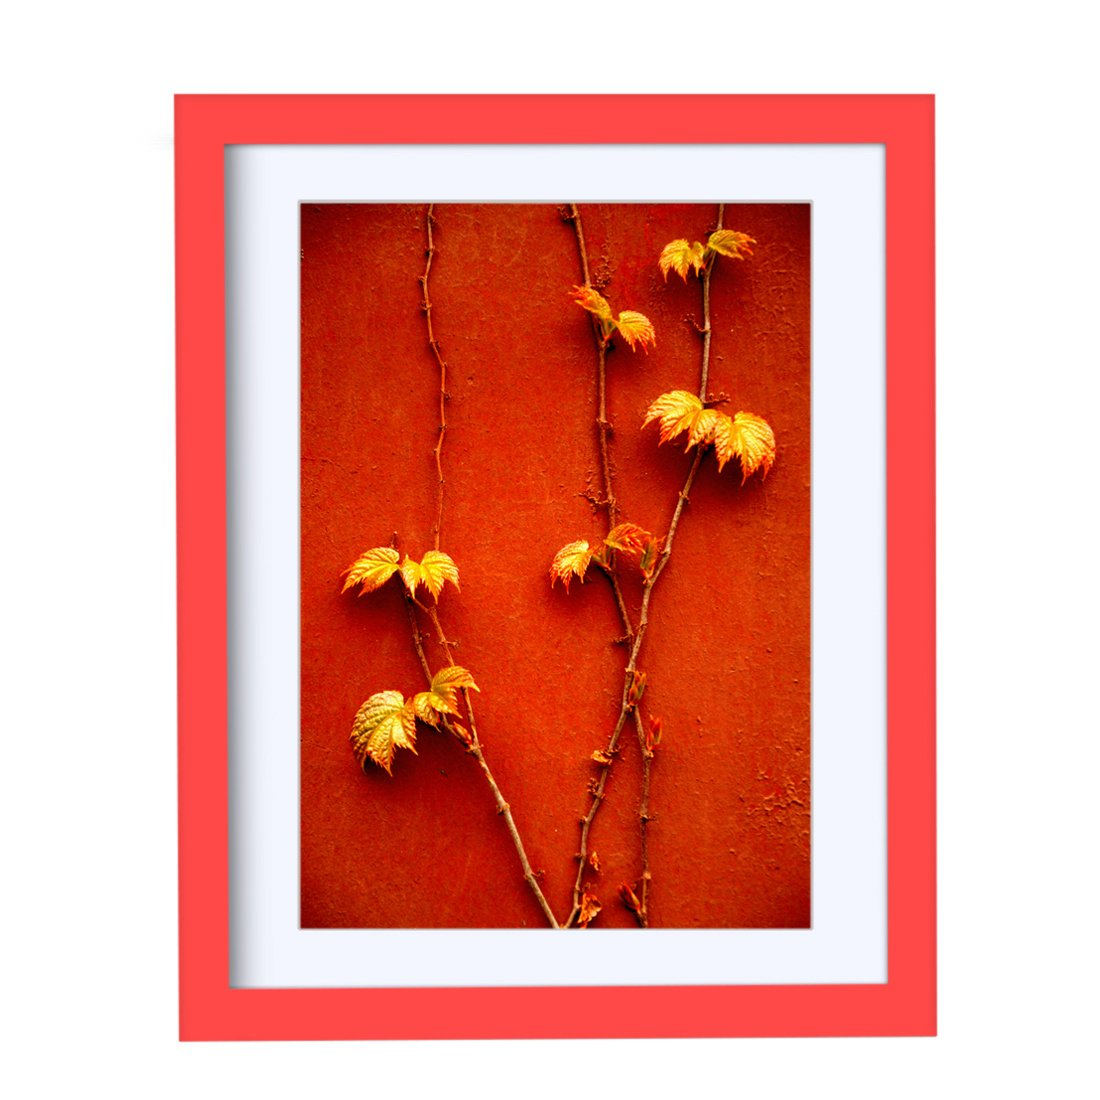 BOJIN Red 11x14 Inch Wall Wood Picture Frames For Portrait or Landscape, Made To Show Picture A4 With Mat BOJ003078